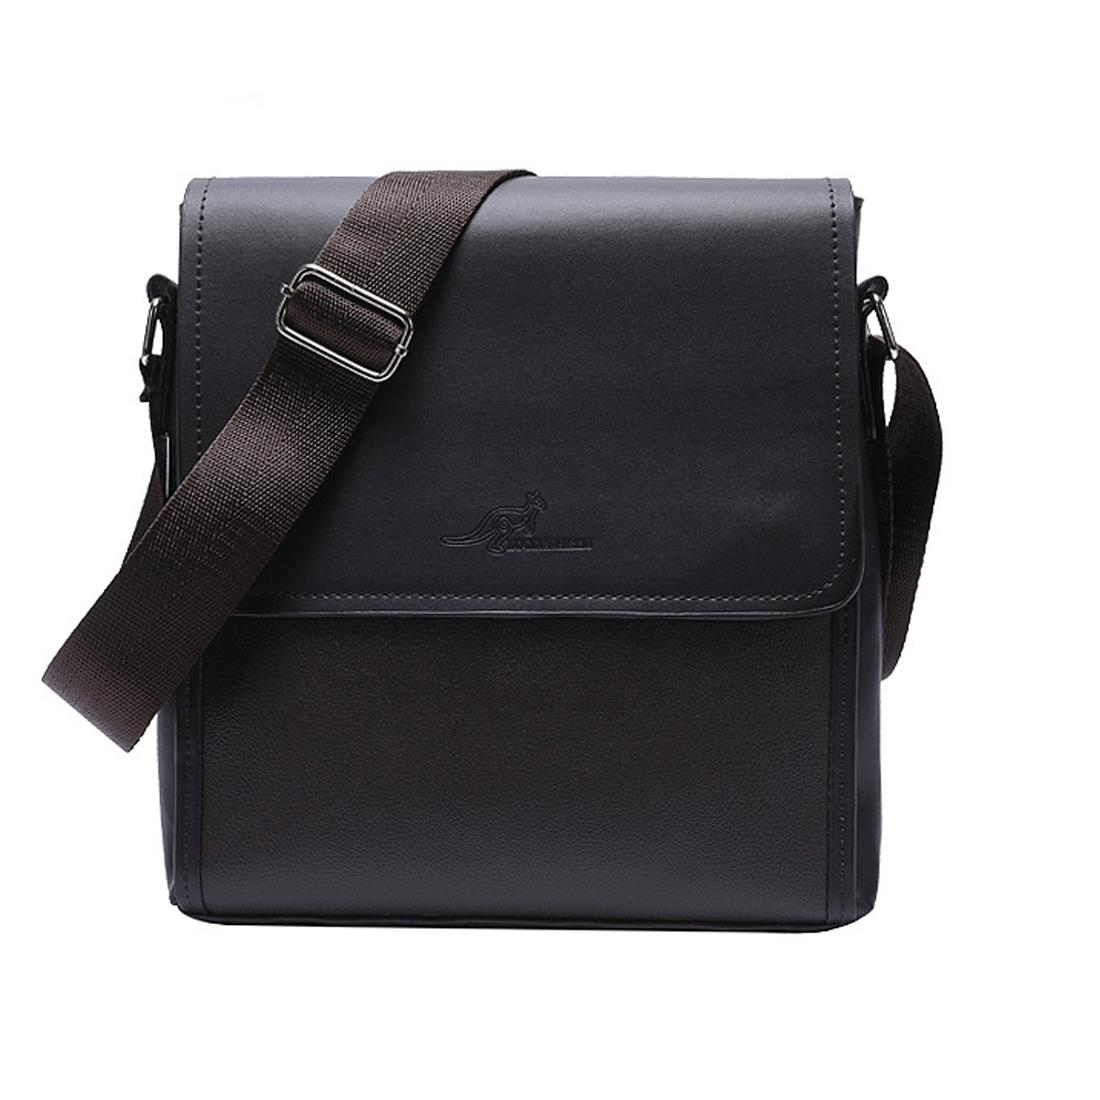 73f95564898d Messenger Bags for sale - Messenger Bags for Men online brands ...